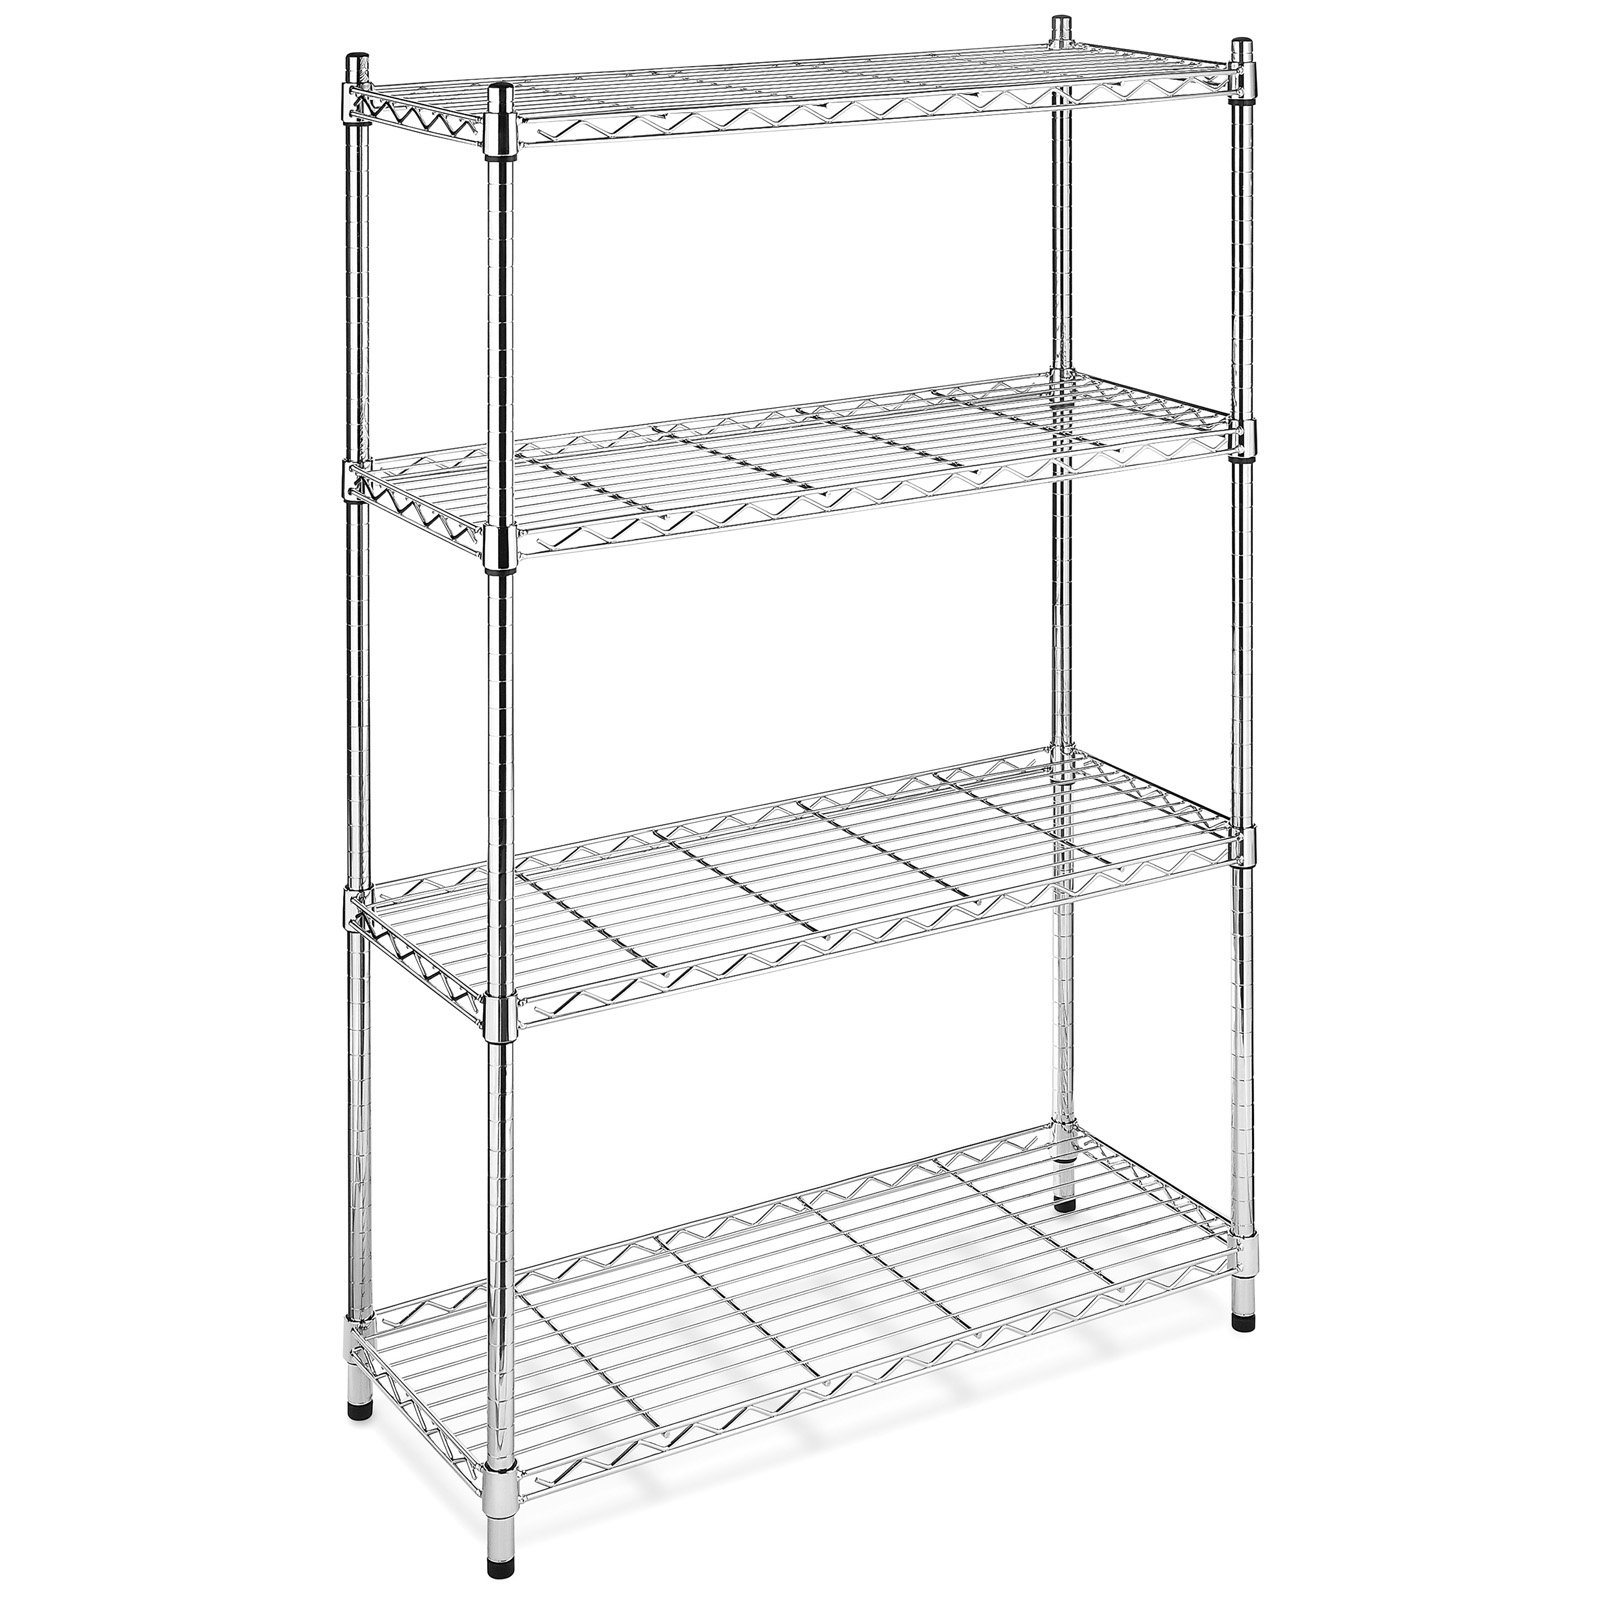 Badregal Edelstahl Hot Item 4 Layers Black Painted Wire Shelving